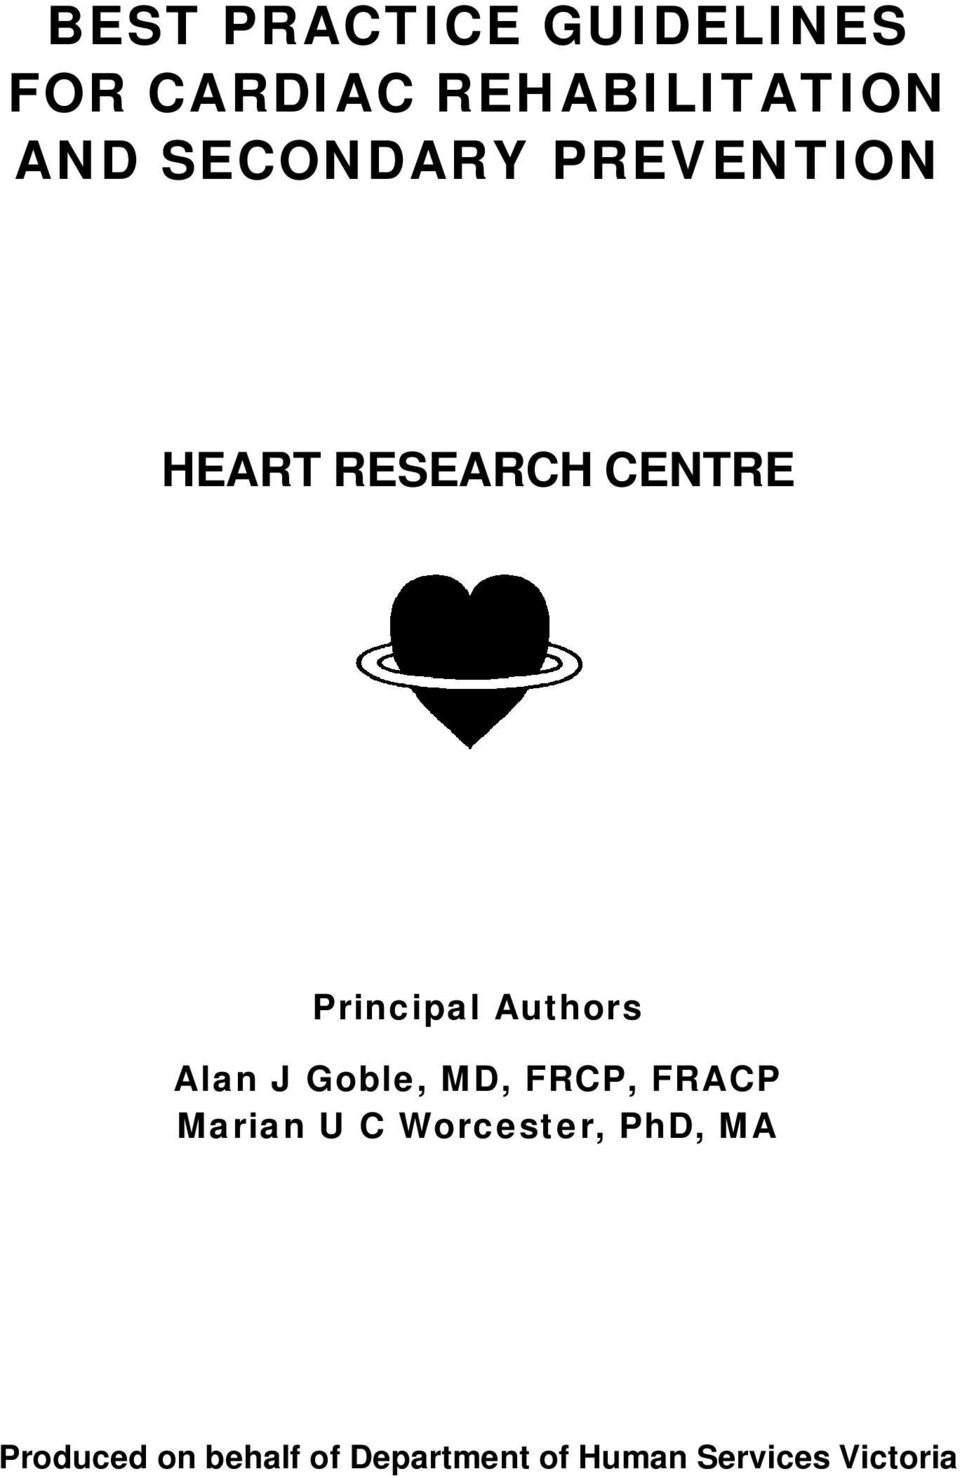 Authors Alan J Goble, MD, FRCP, FRACP Marian U C